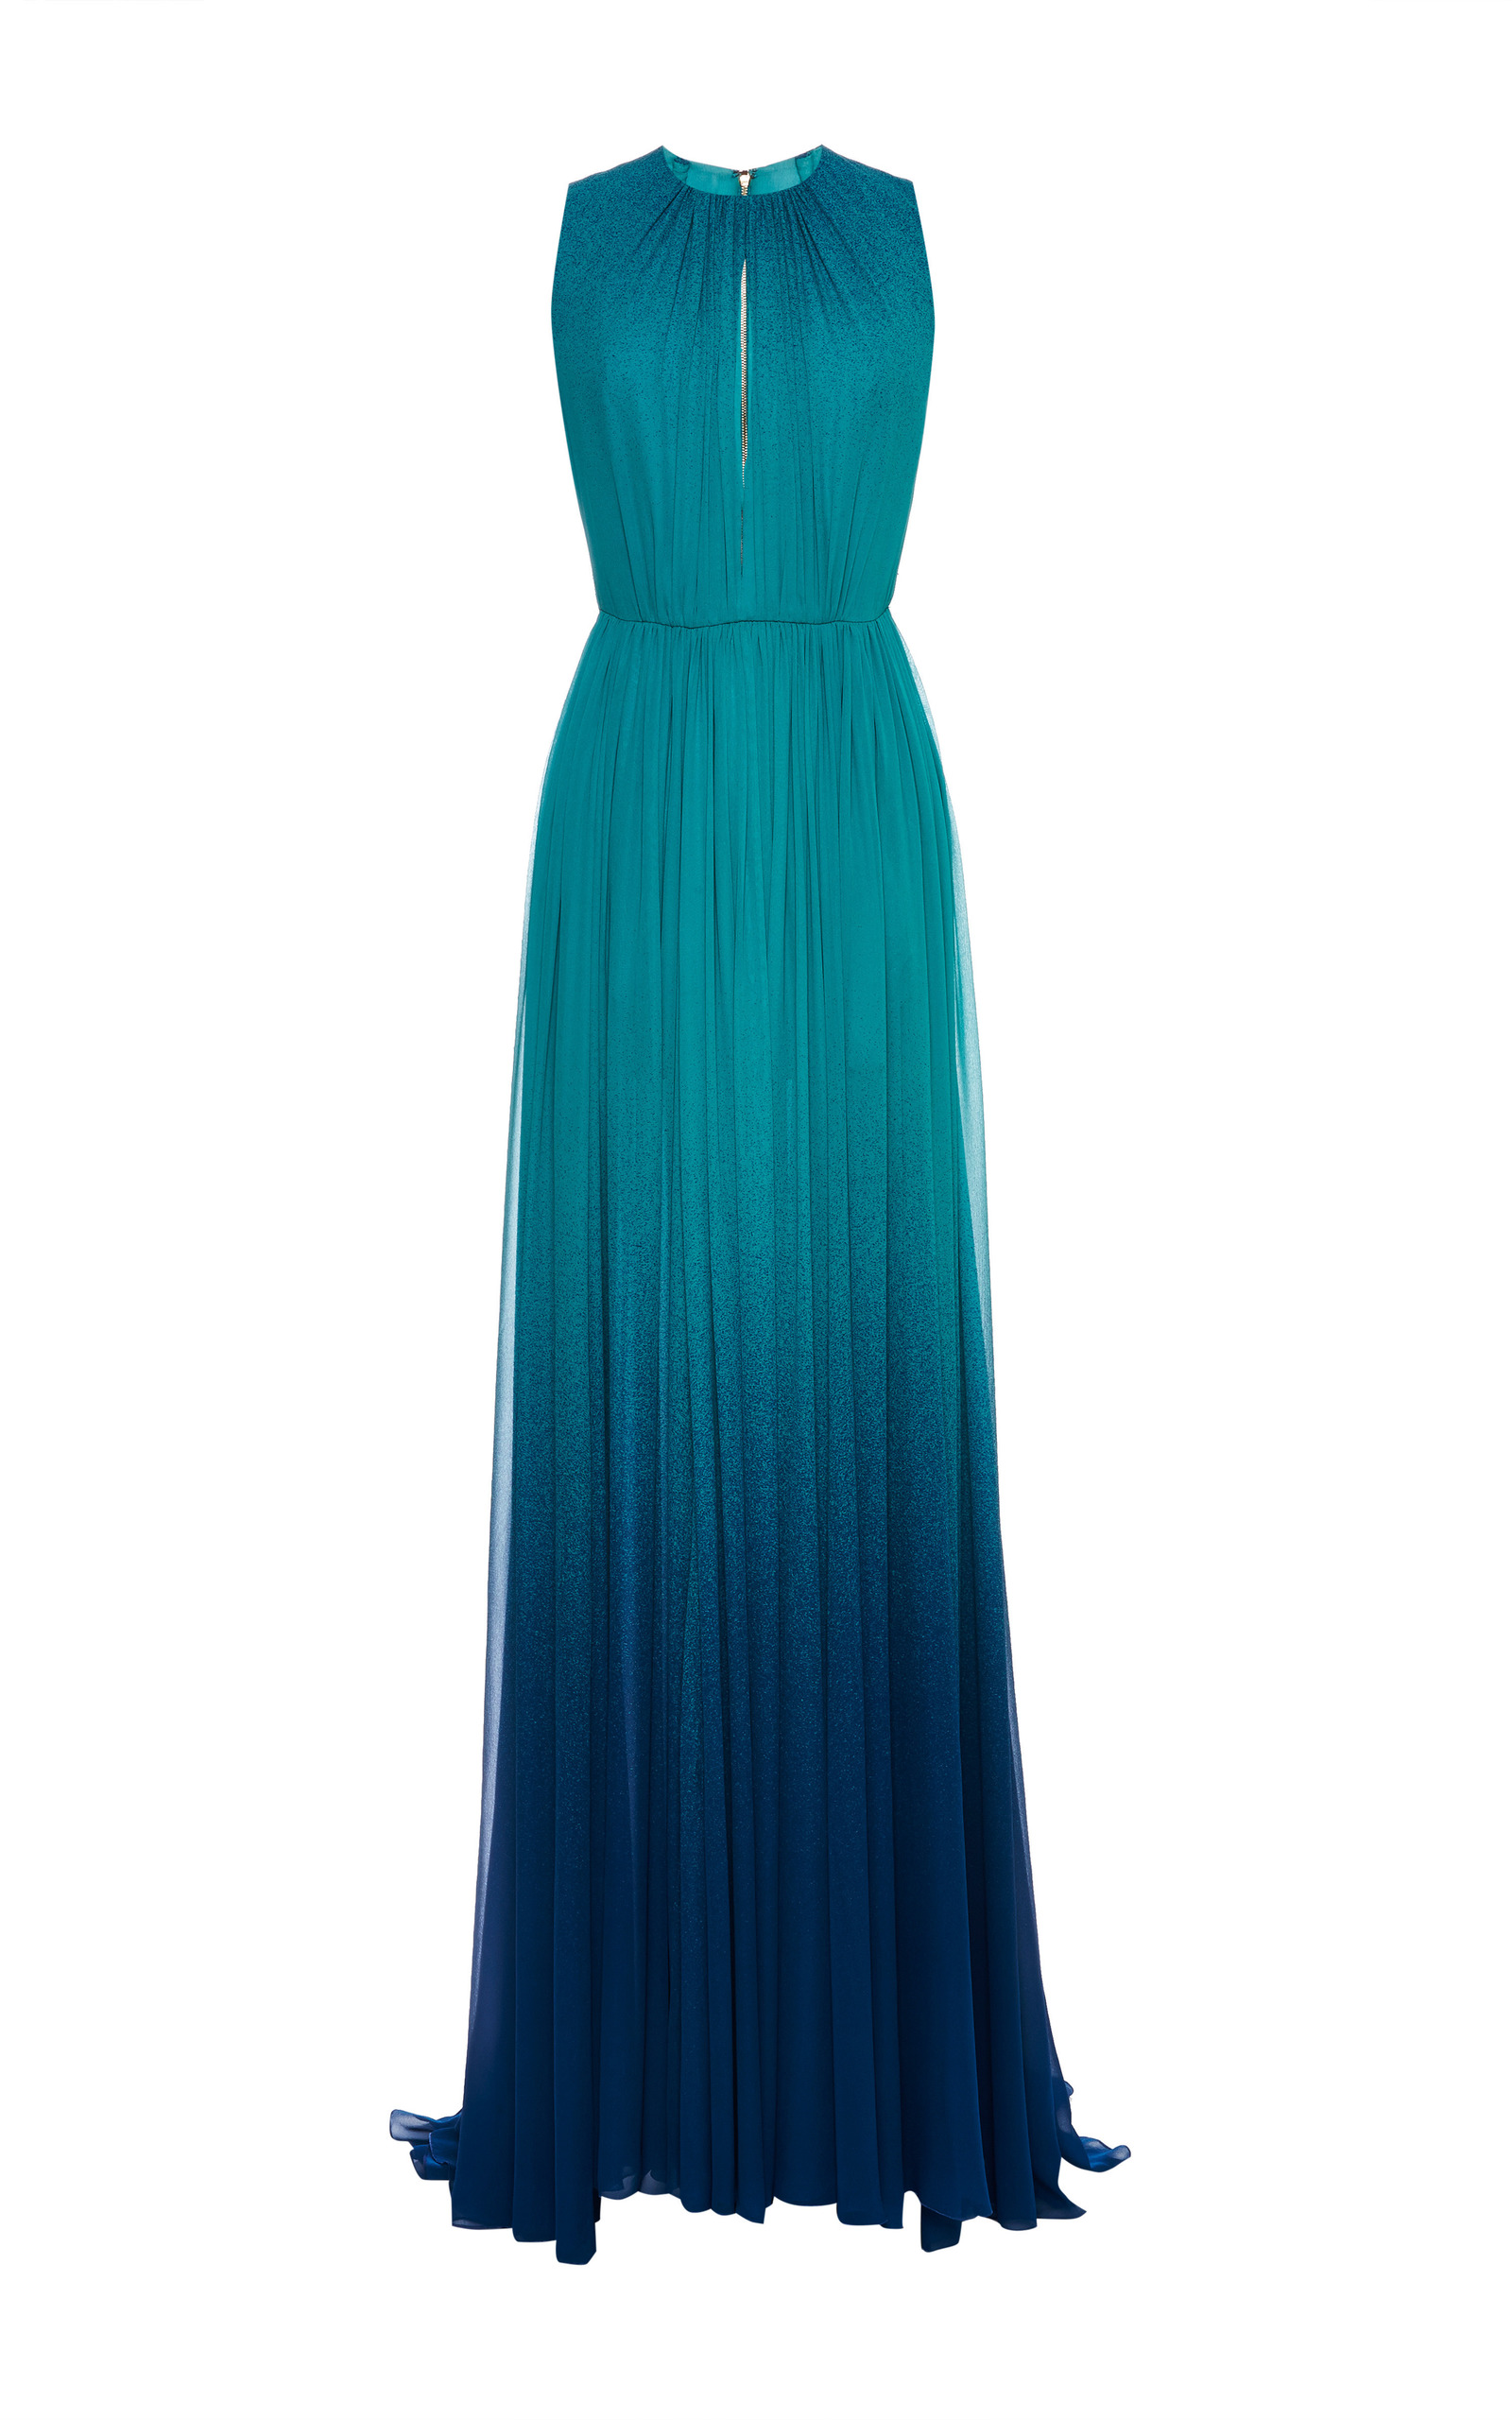 Turquoise Degrade Silk Georgette Dress By Elie Saab Moda